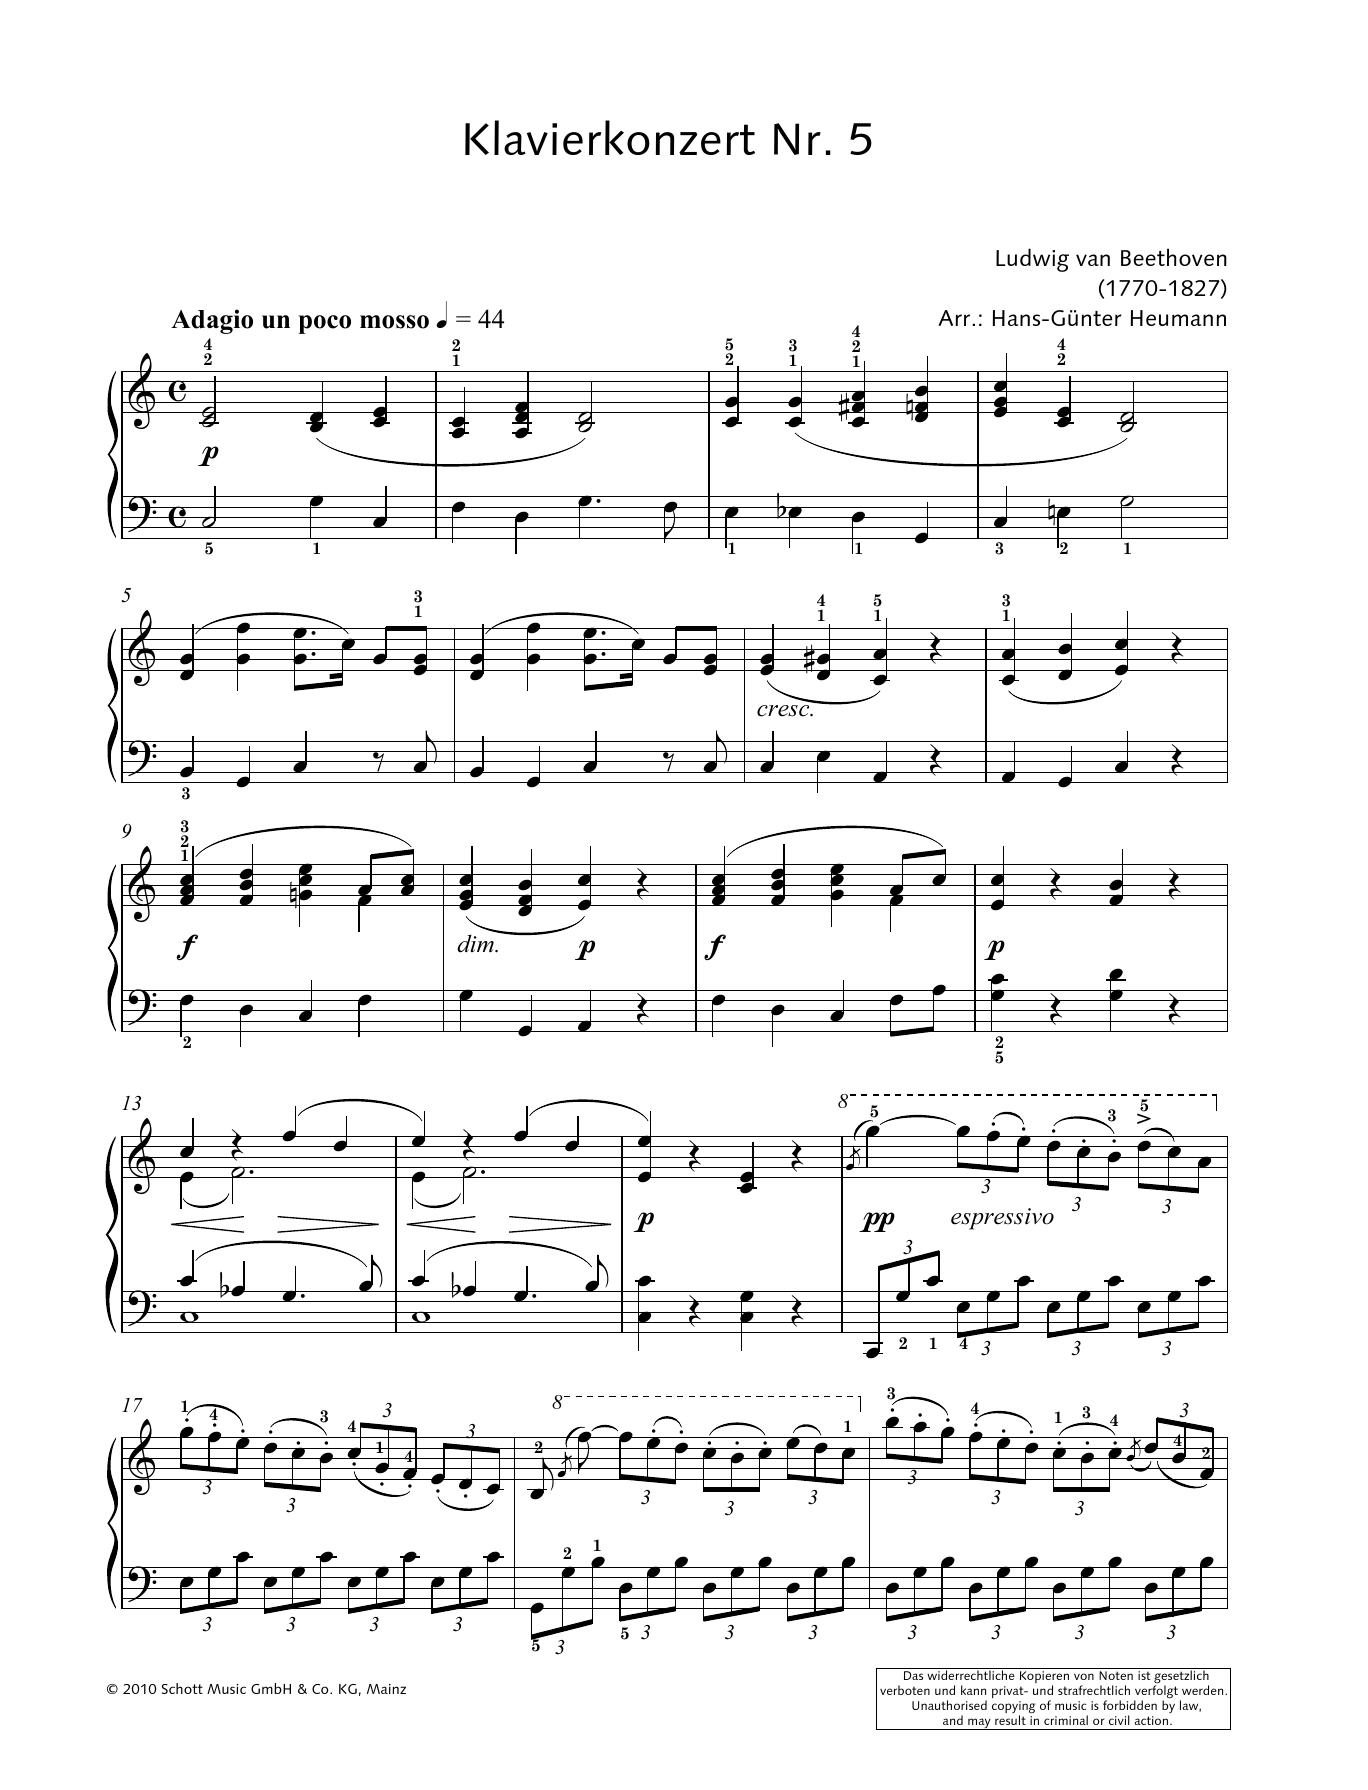 Concerto for Piano and Orchestra No. 5 in E-flat major Sheet Music